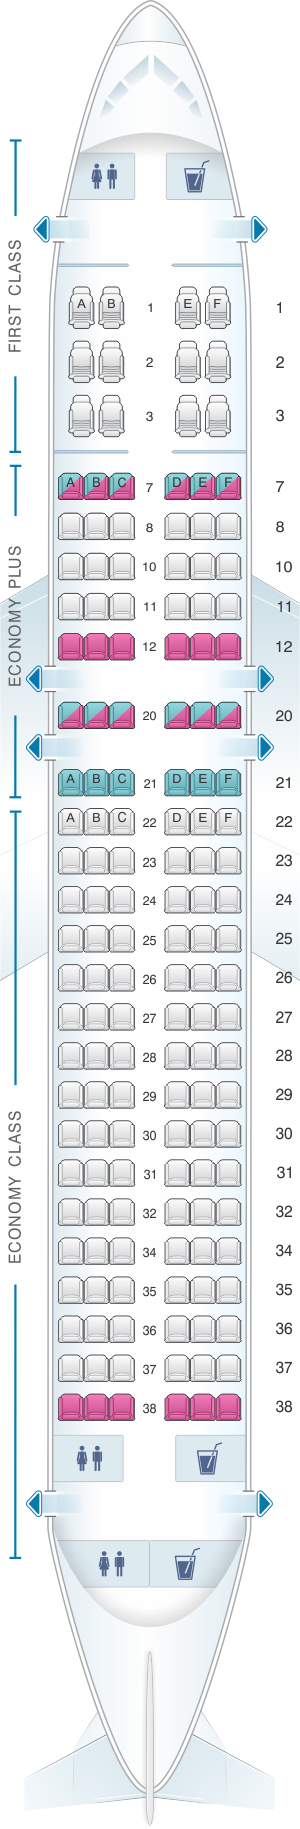 Seat map for United Airlines Airbus A320